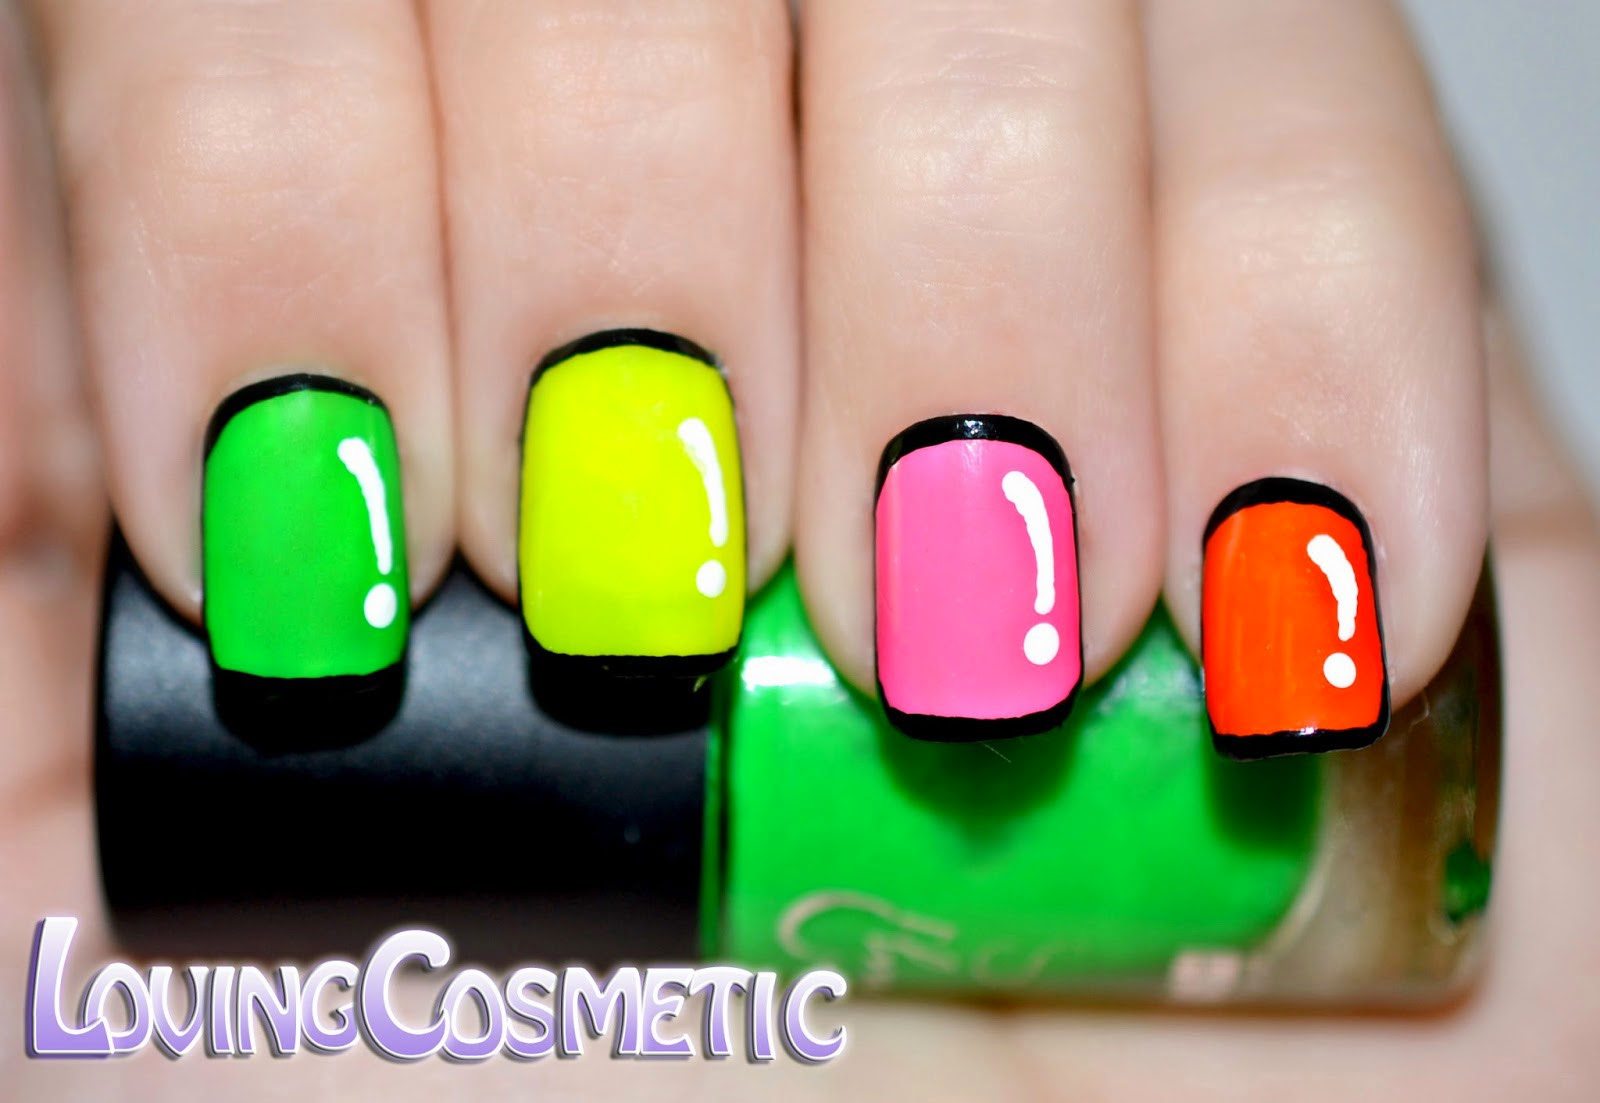 Cartoon Nails - # 8 Neón ~ LovingCosmetic